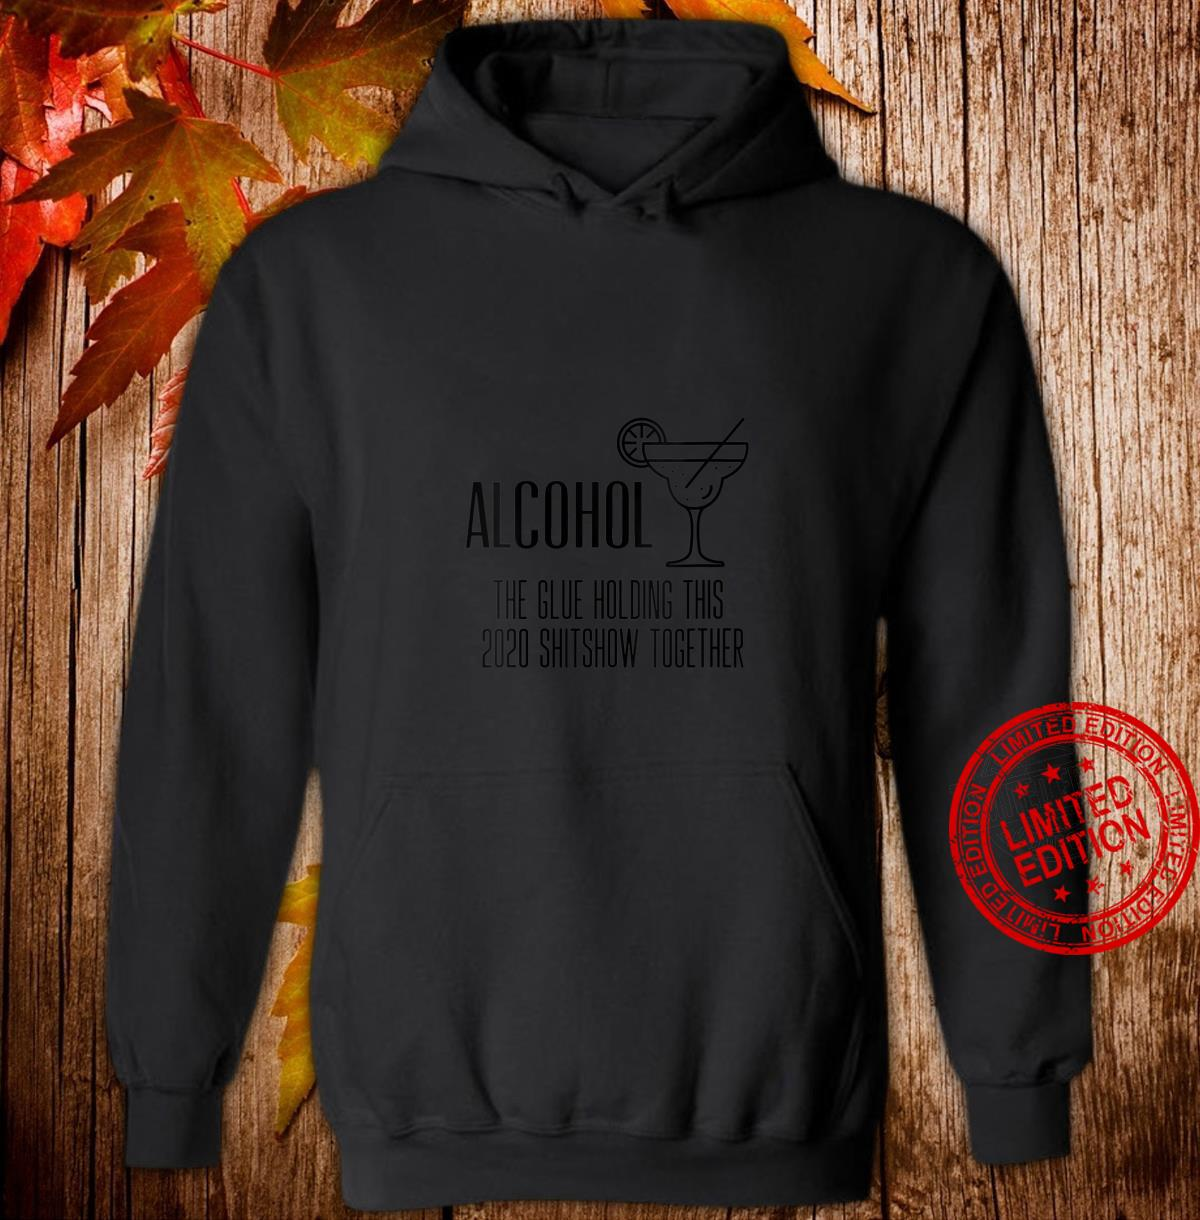 Womens Alcohol The Glue Holding This 2020 Shitshow Together Shirt hoodie